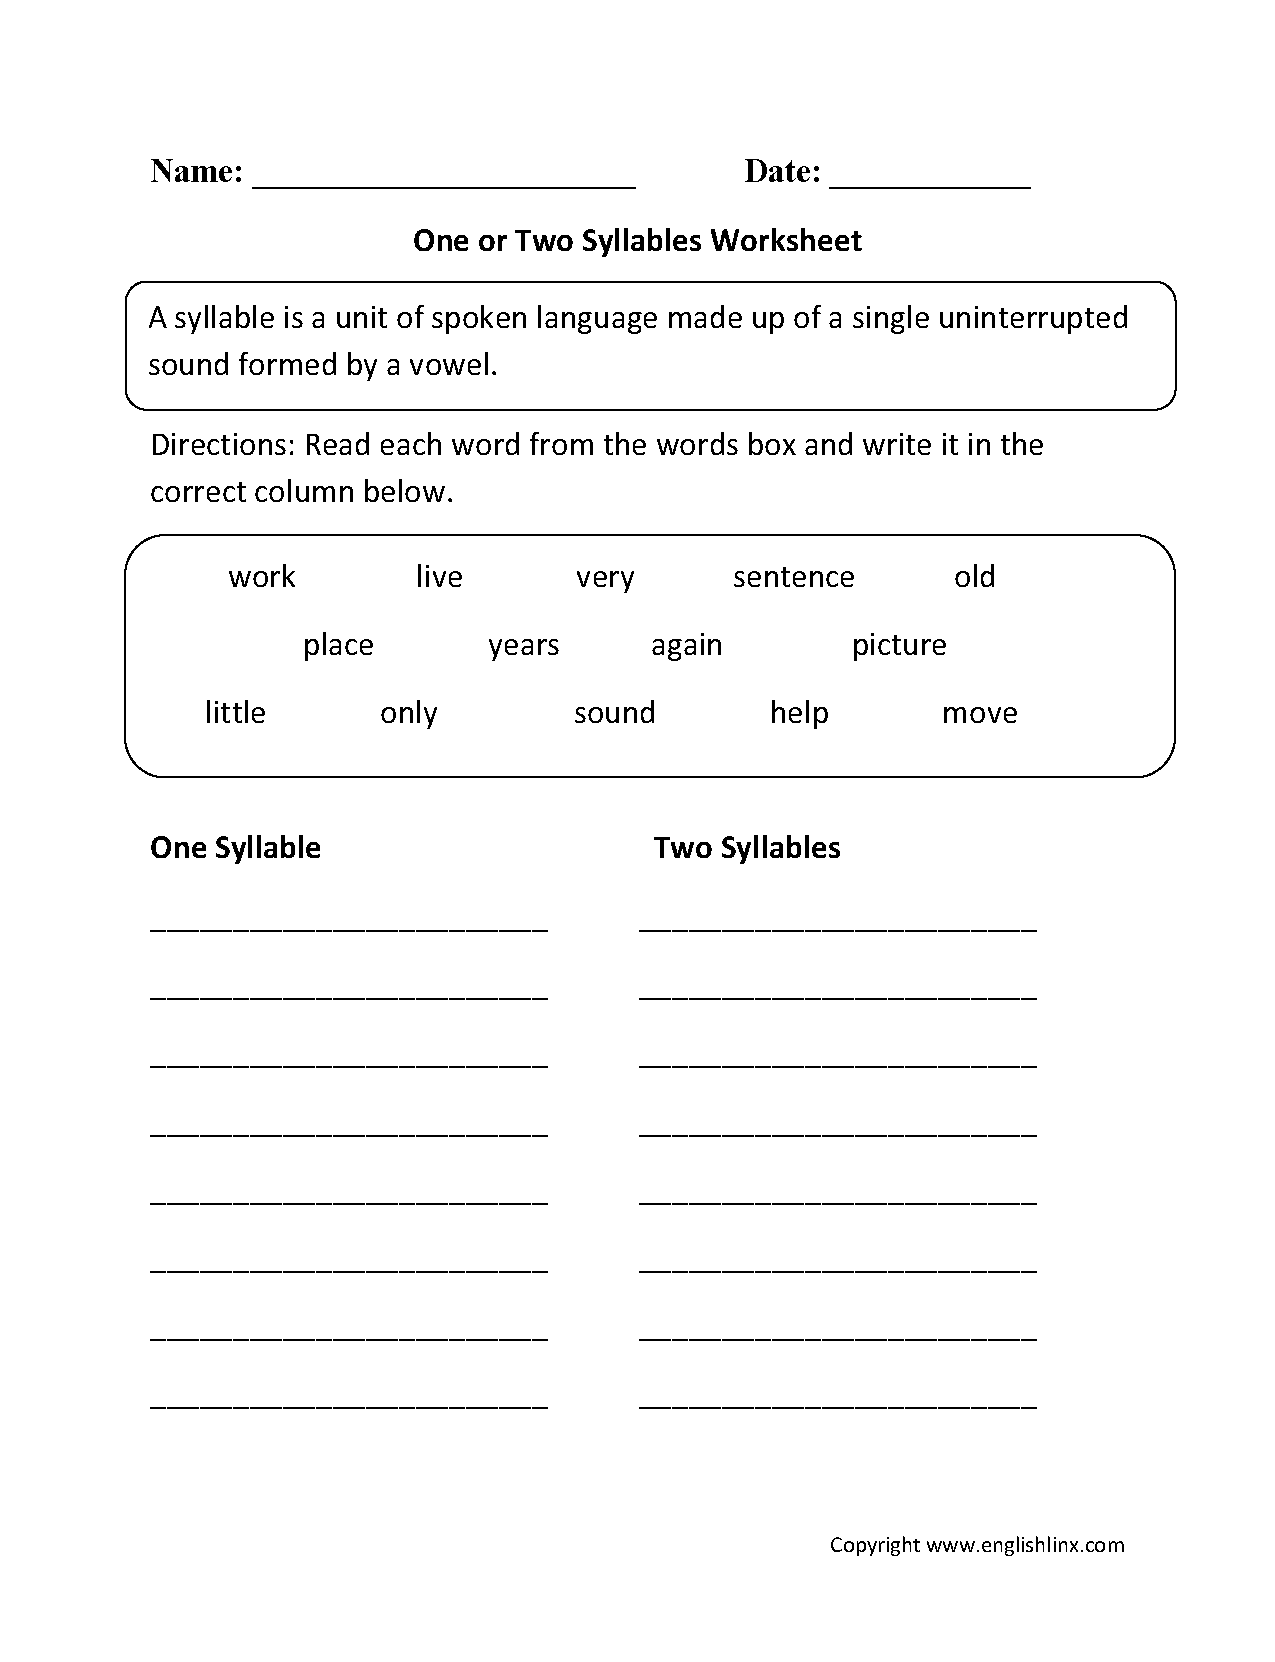 worksheet Multi Syllable Words Worksheets one or two syllables worksheets englishlinx com board pinterest this worksheet directs the student to identify words from word bank must re